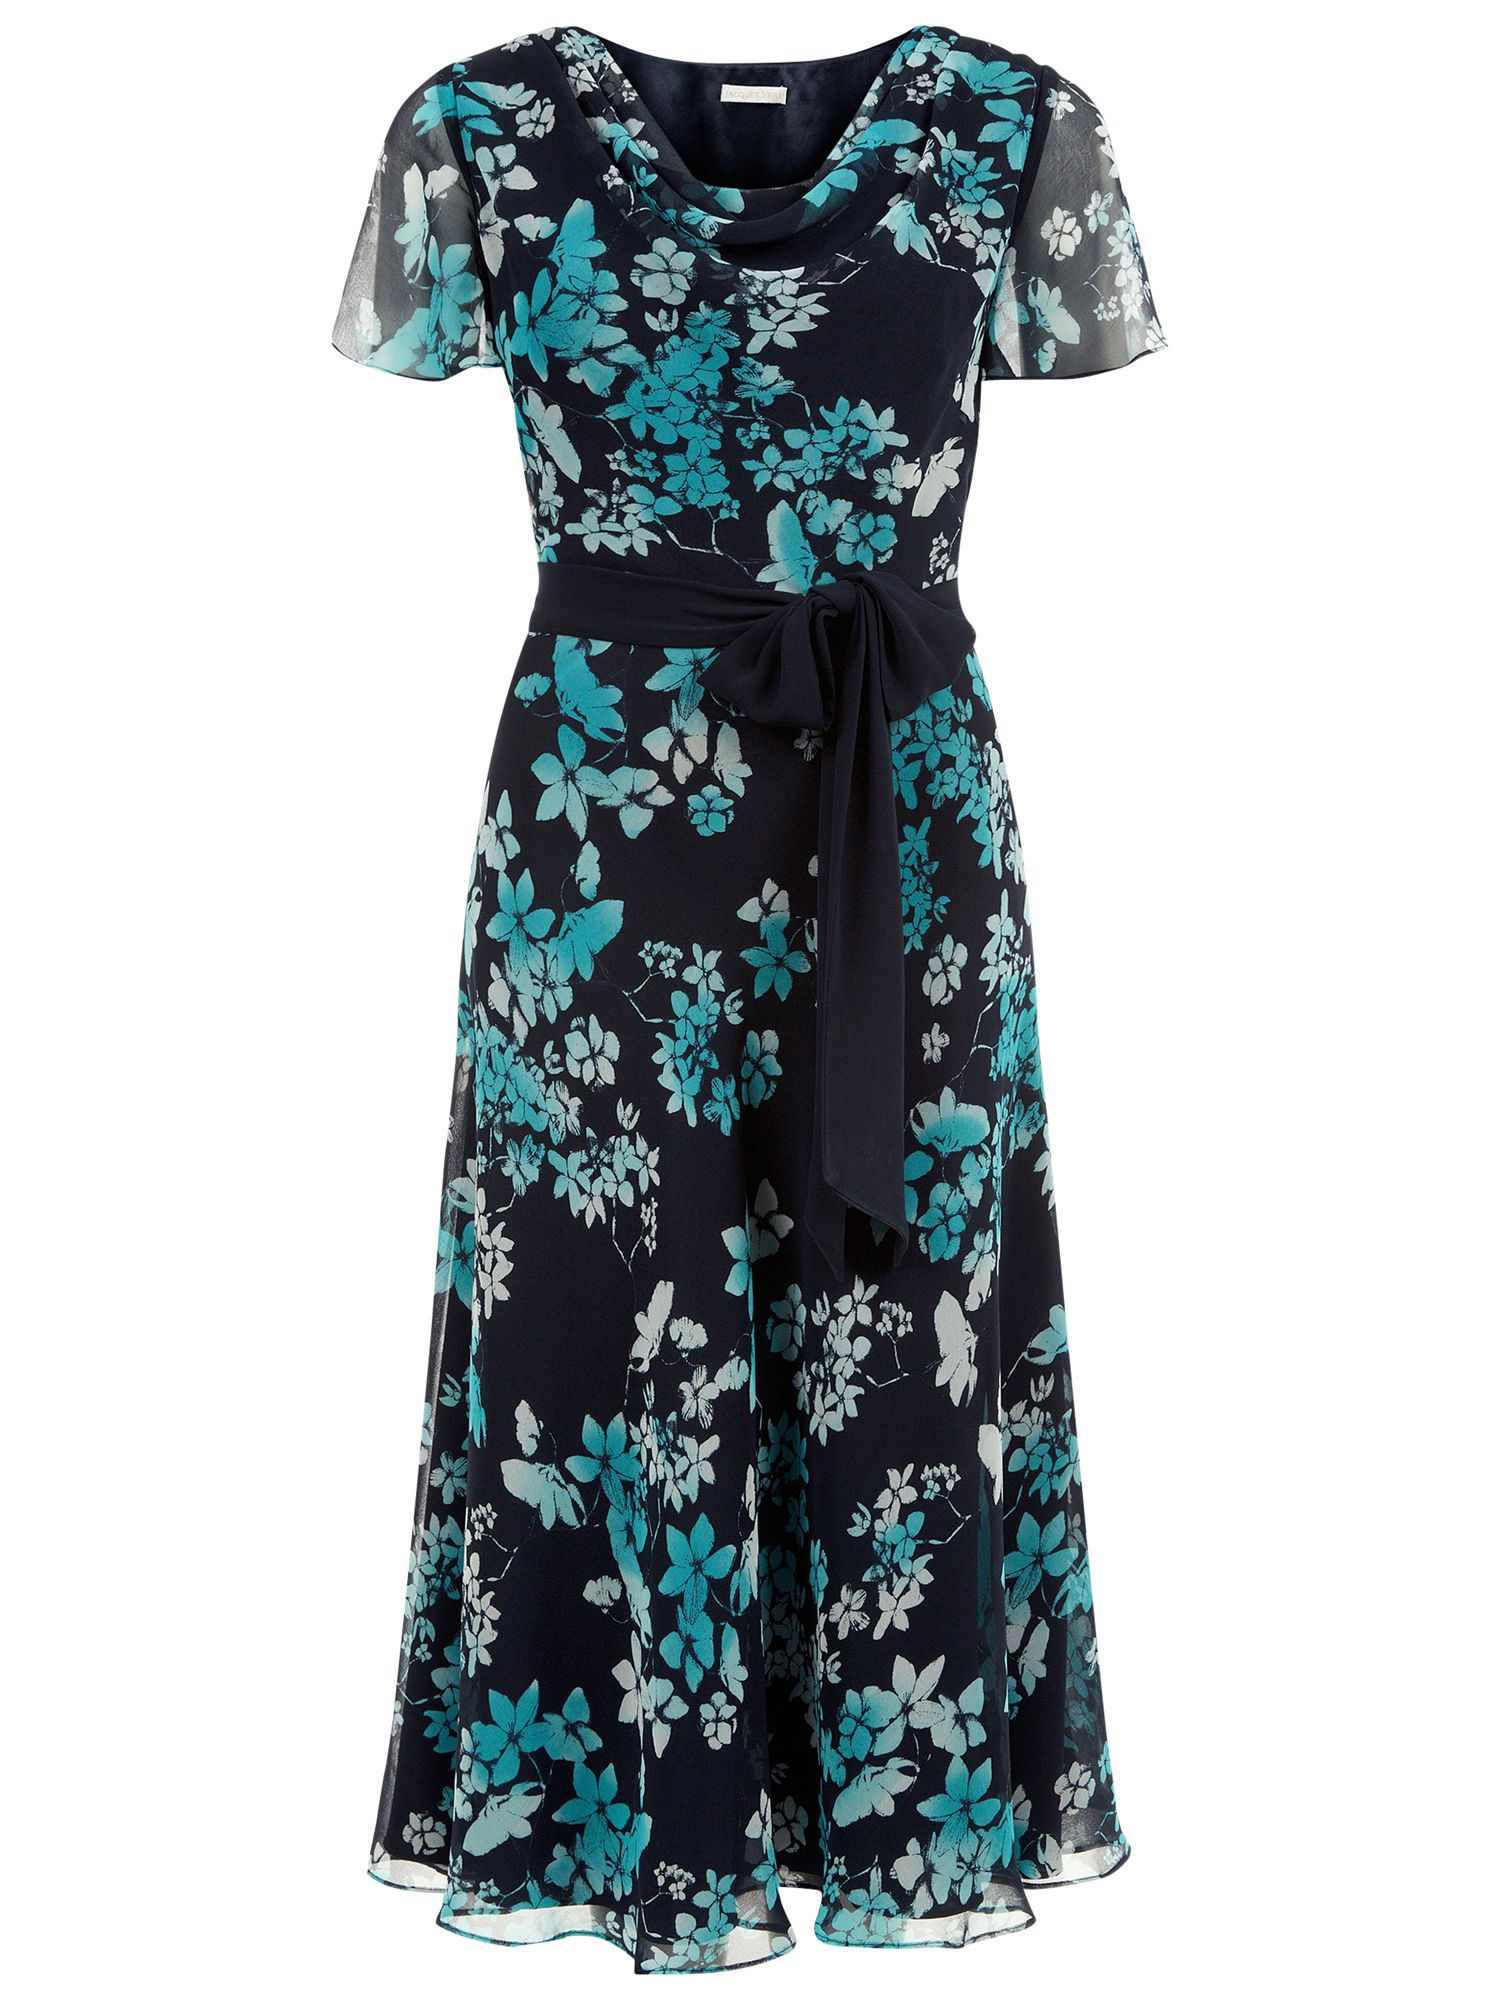 jacques vert butterfly flower prom dress multi/navy, jacques, vert, butterfly, flower, prom, dress, multi/navy, jacques vert, 16|12|14|10|8|22|18|24|20, women, plus size, womens dresses, new in clothing, 1921726